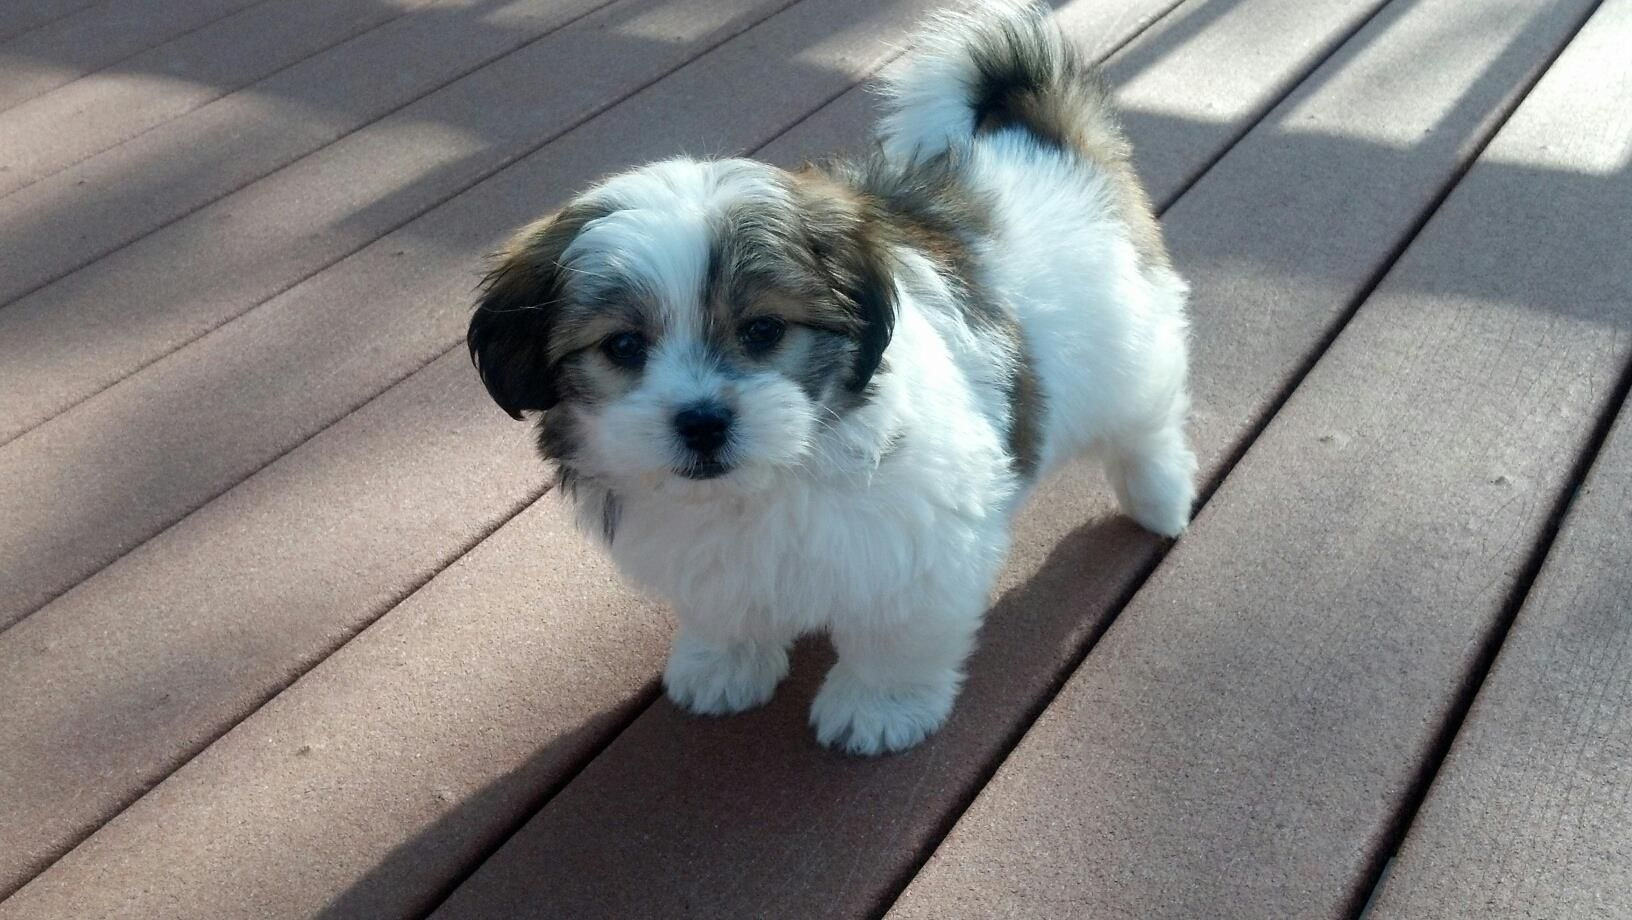 Our New Puppy A Malshi Maltese Shih Tsu His Name Is Snicker